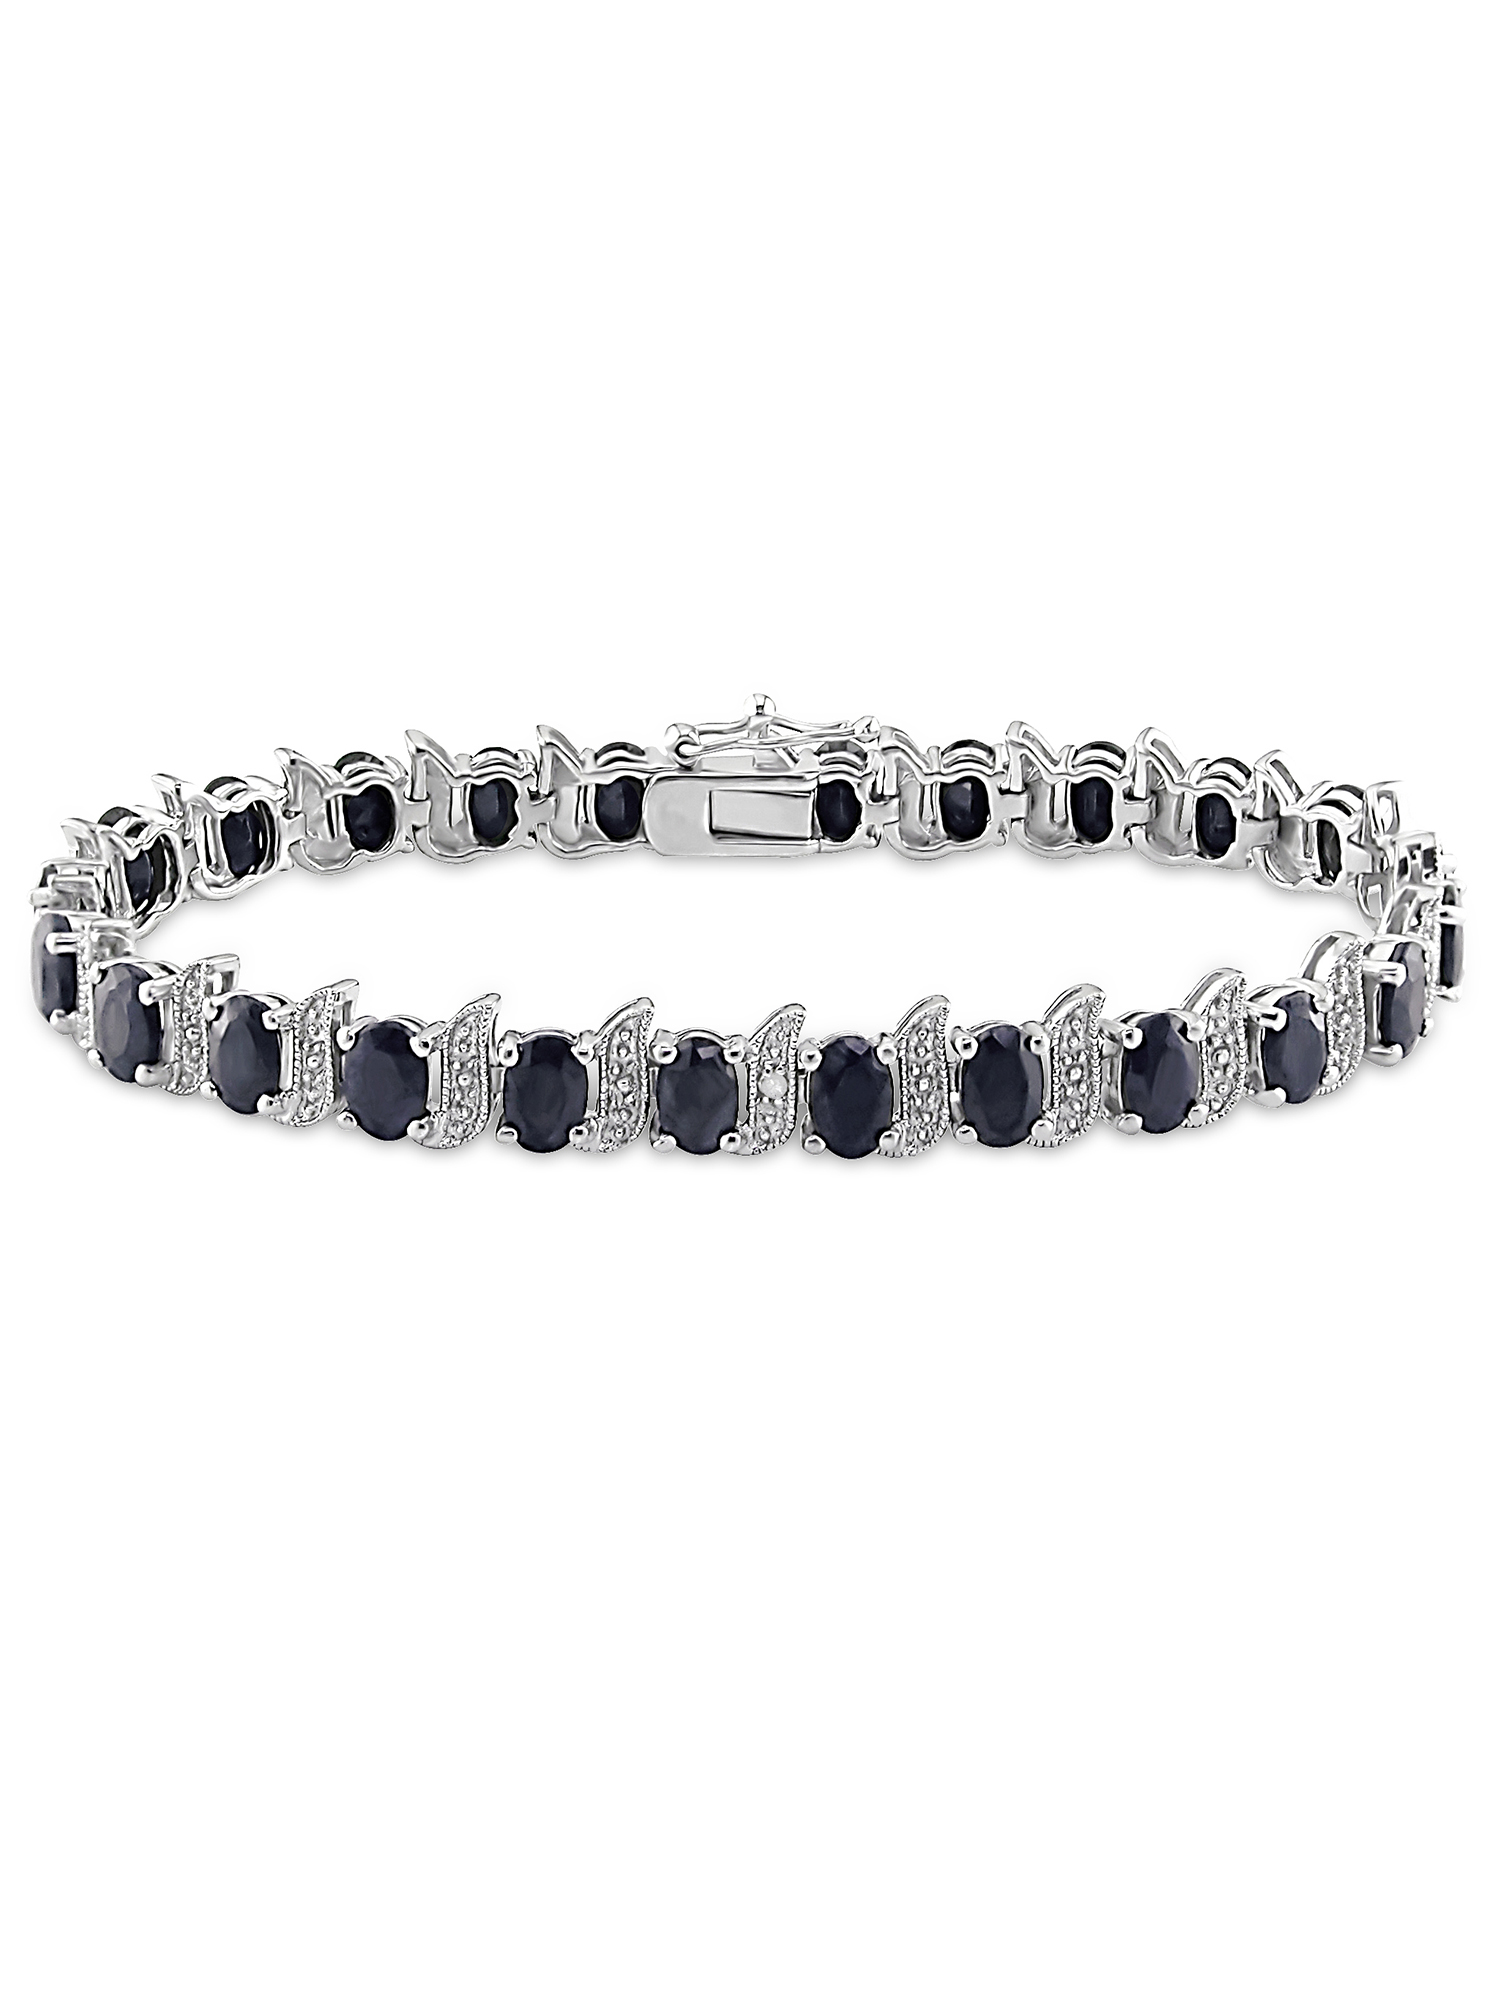 Asteria 14-7/8 Carat T.G.W. Black Sapphire and Diamond Accent Sterling Silver Bracelet, 7""